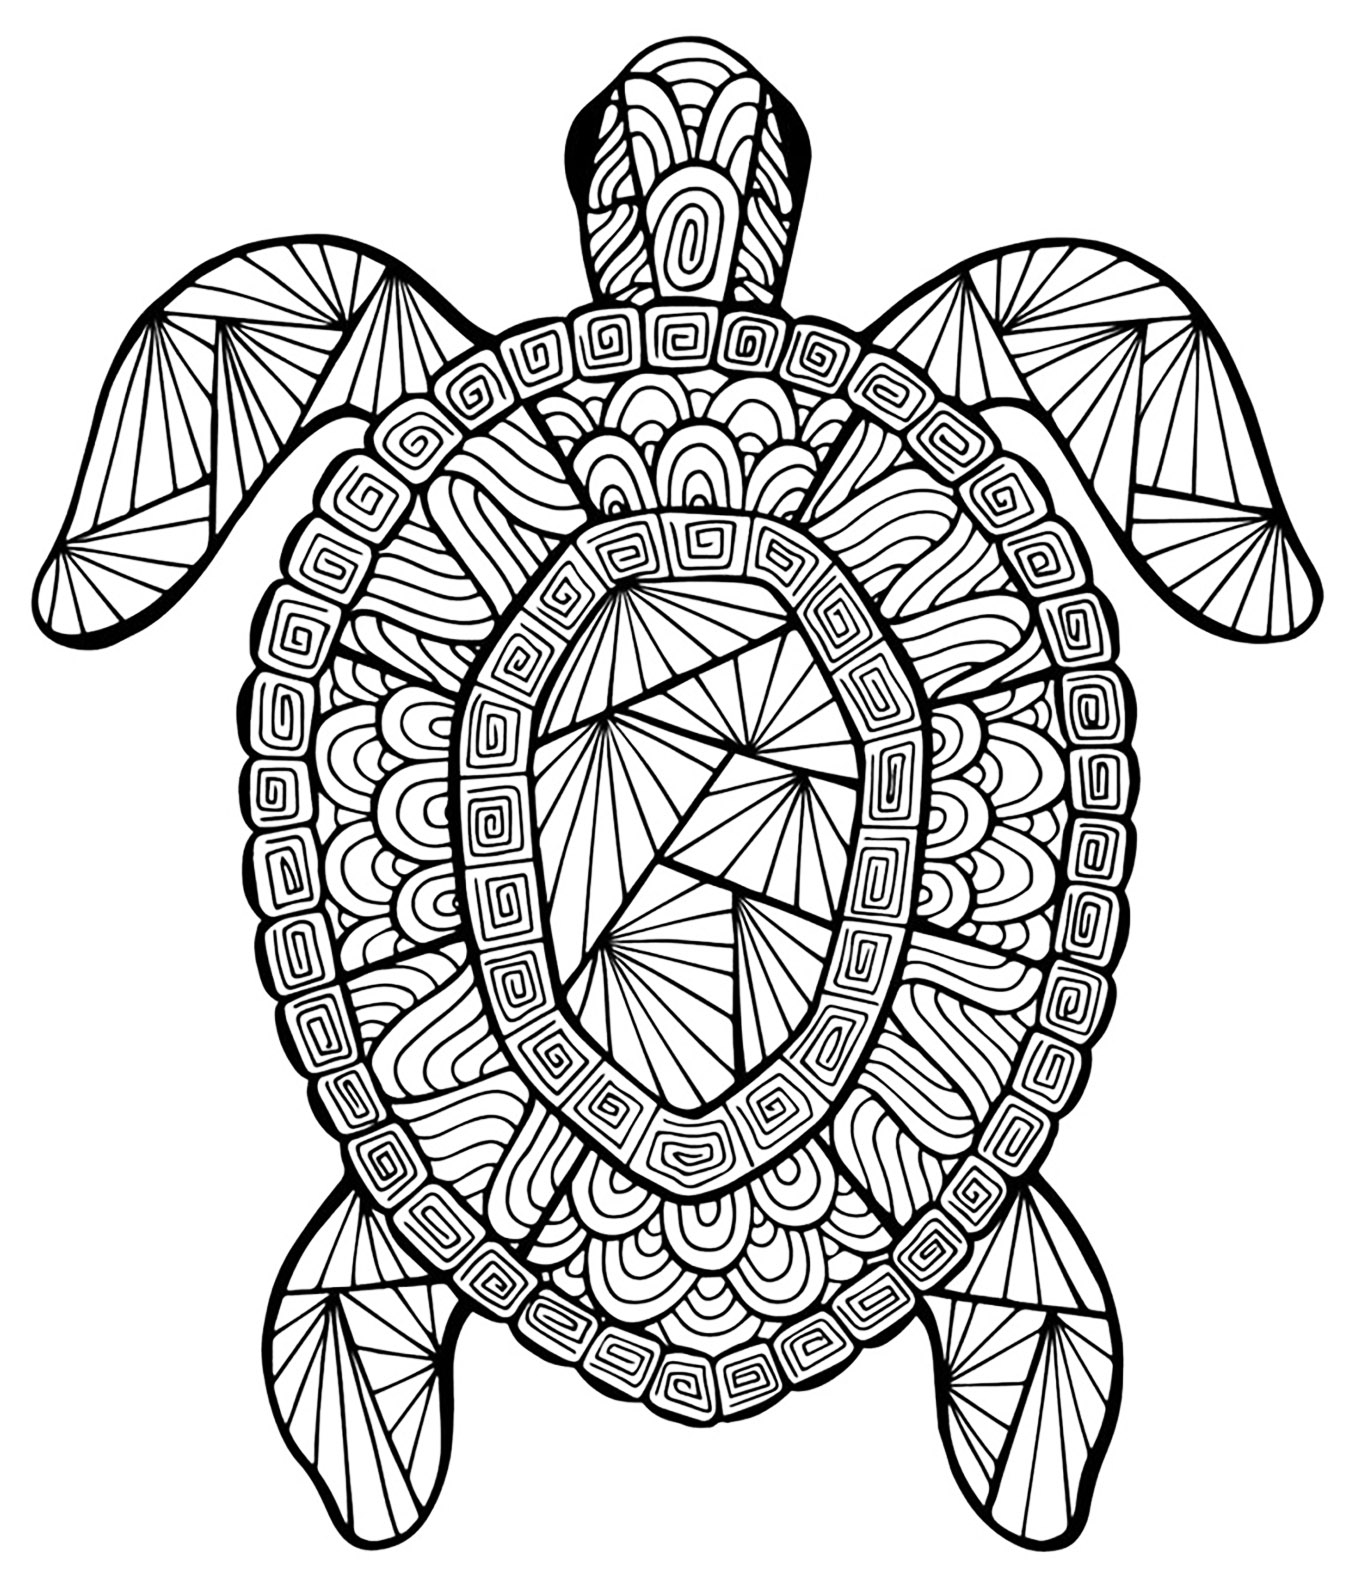 coloring picture turtle turtles to print turtles kids coloring pages coloring picture turtle